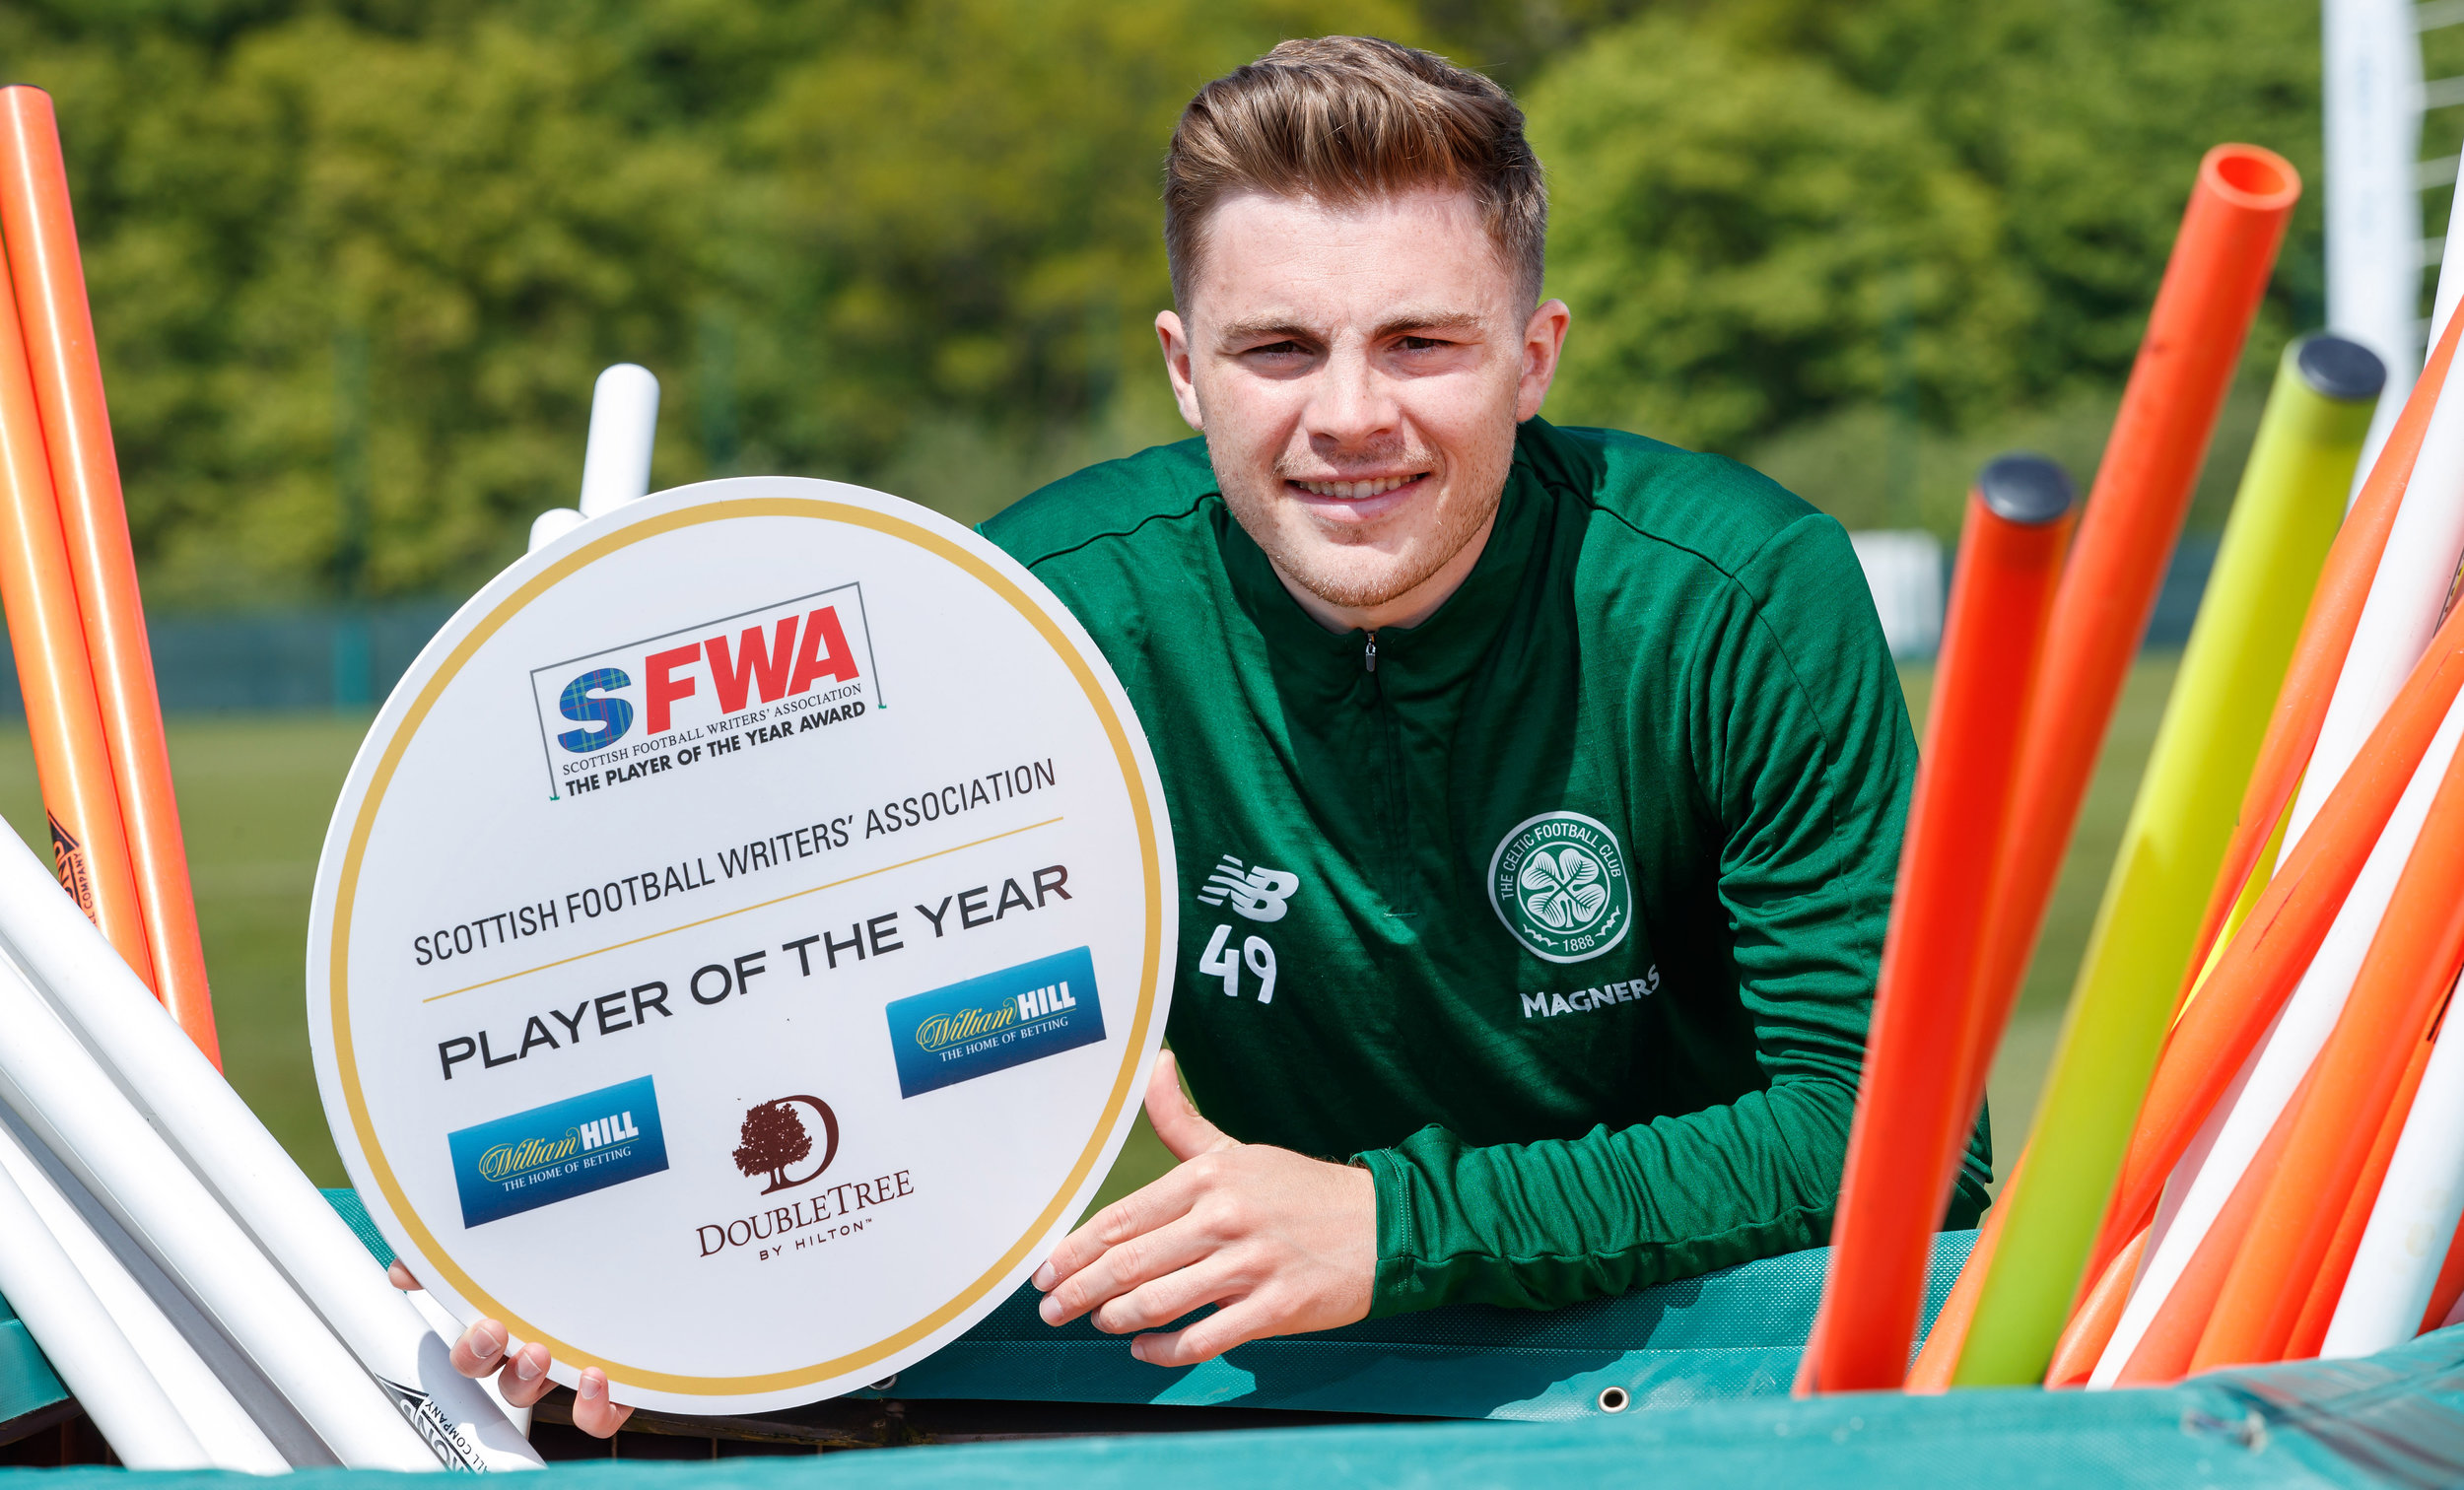 FREE SUNDAY PICTURE JAMES FORREST PLAYER OF YEAR SW3.jpg